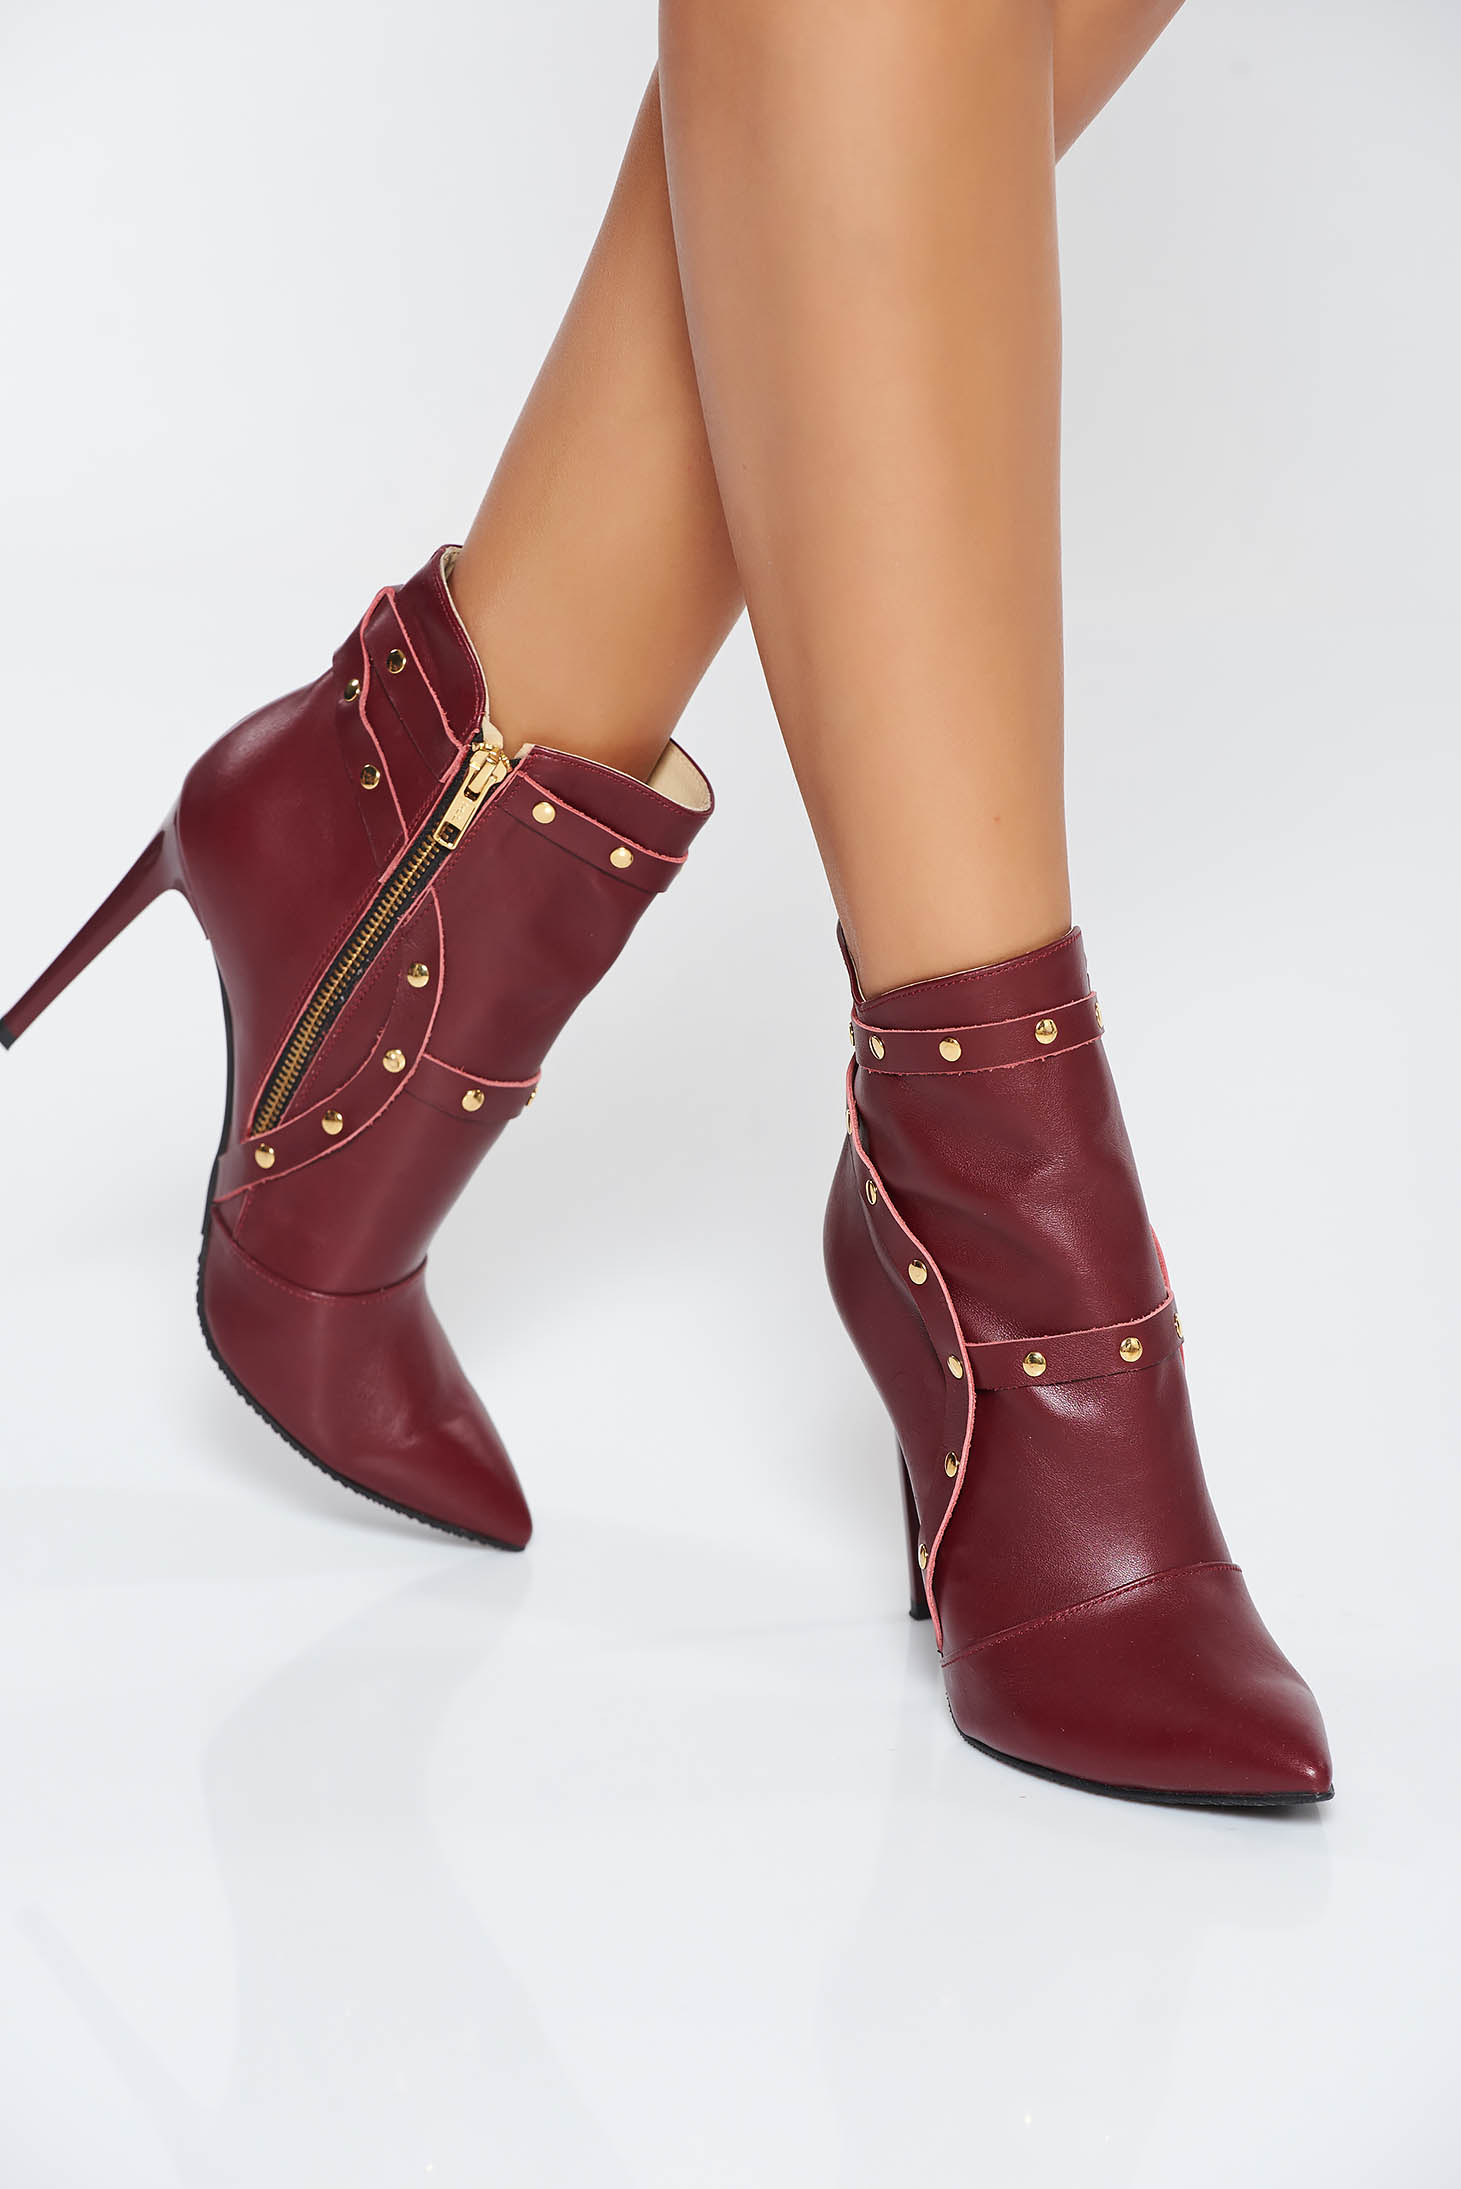 Burgundy natural leather ankle boots with high heels aims